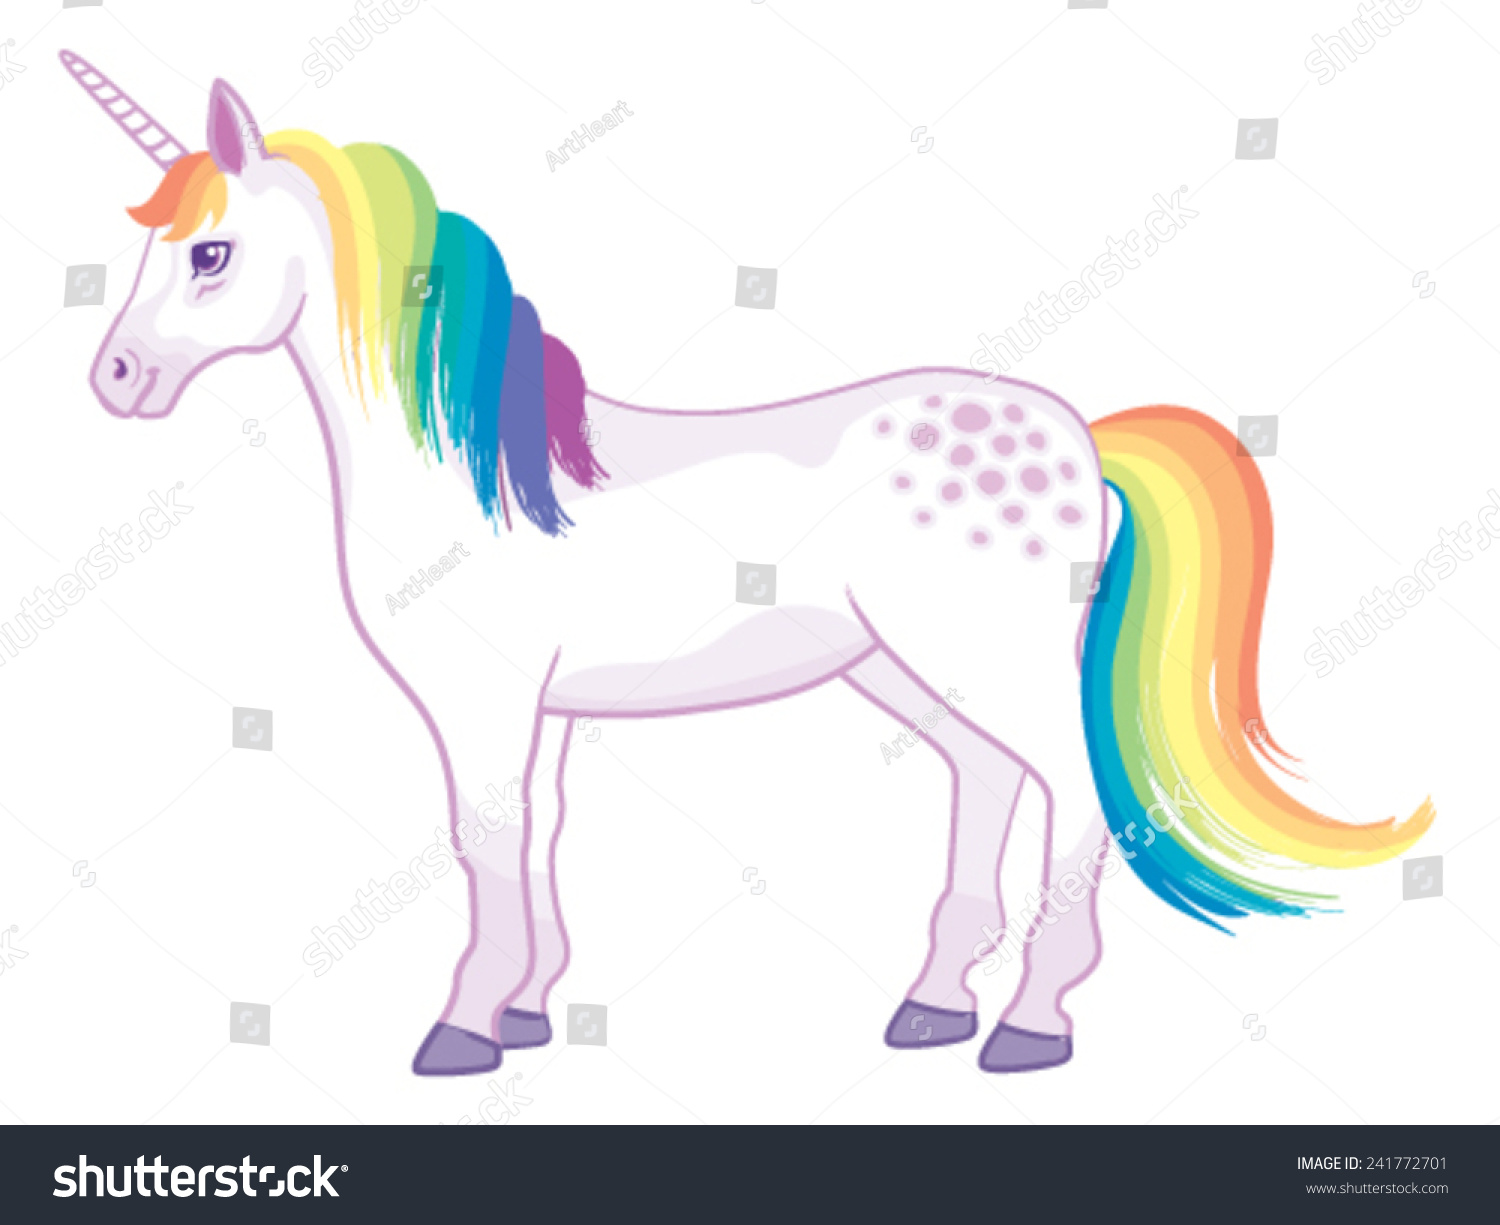 a cartoon unicorn with rainbow mane and tail standing still stock